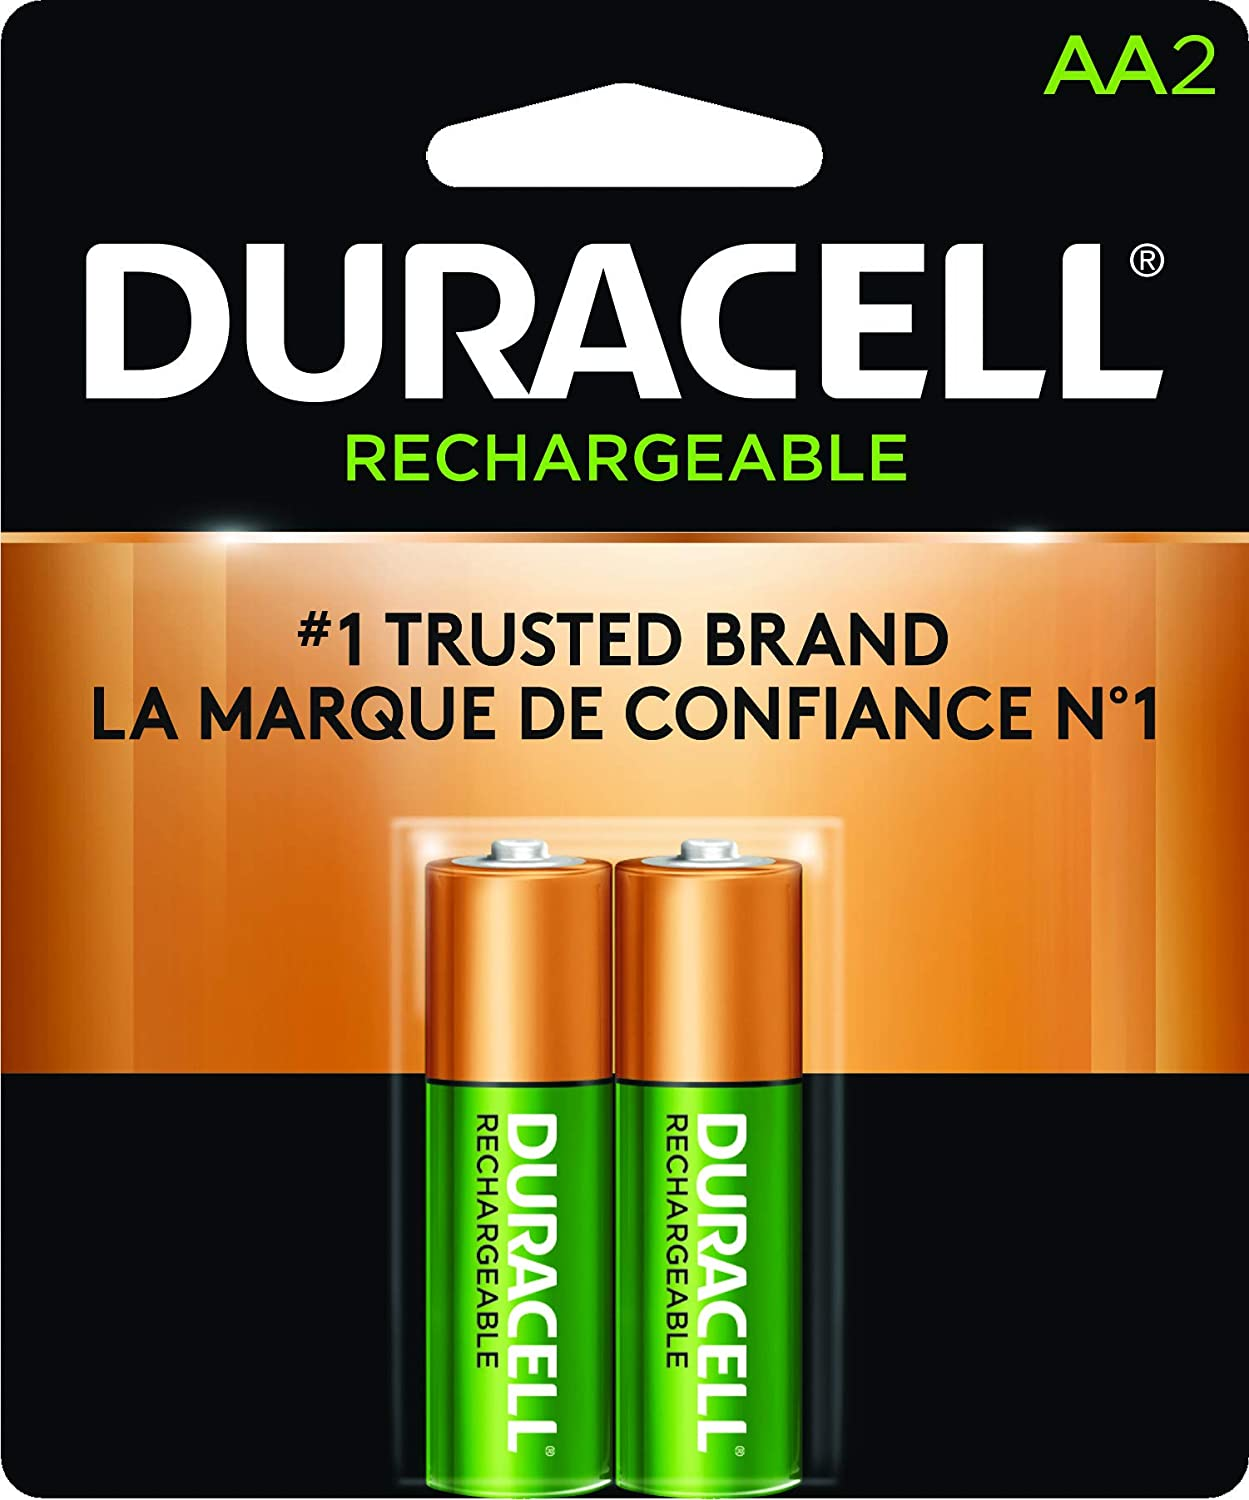 Duracell Rechargeable AA Batteries, 2 Count AA-Rechx2